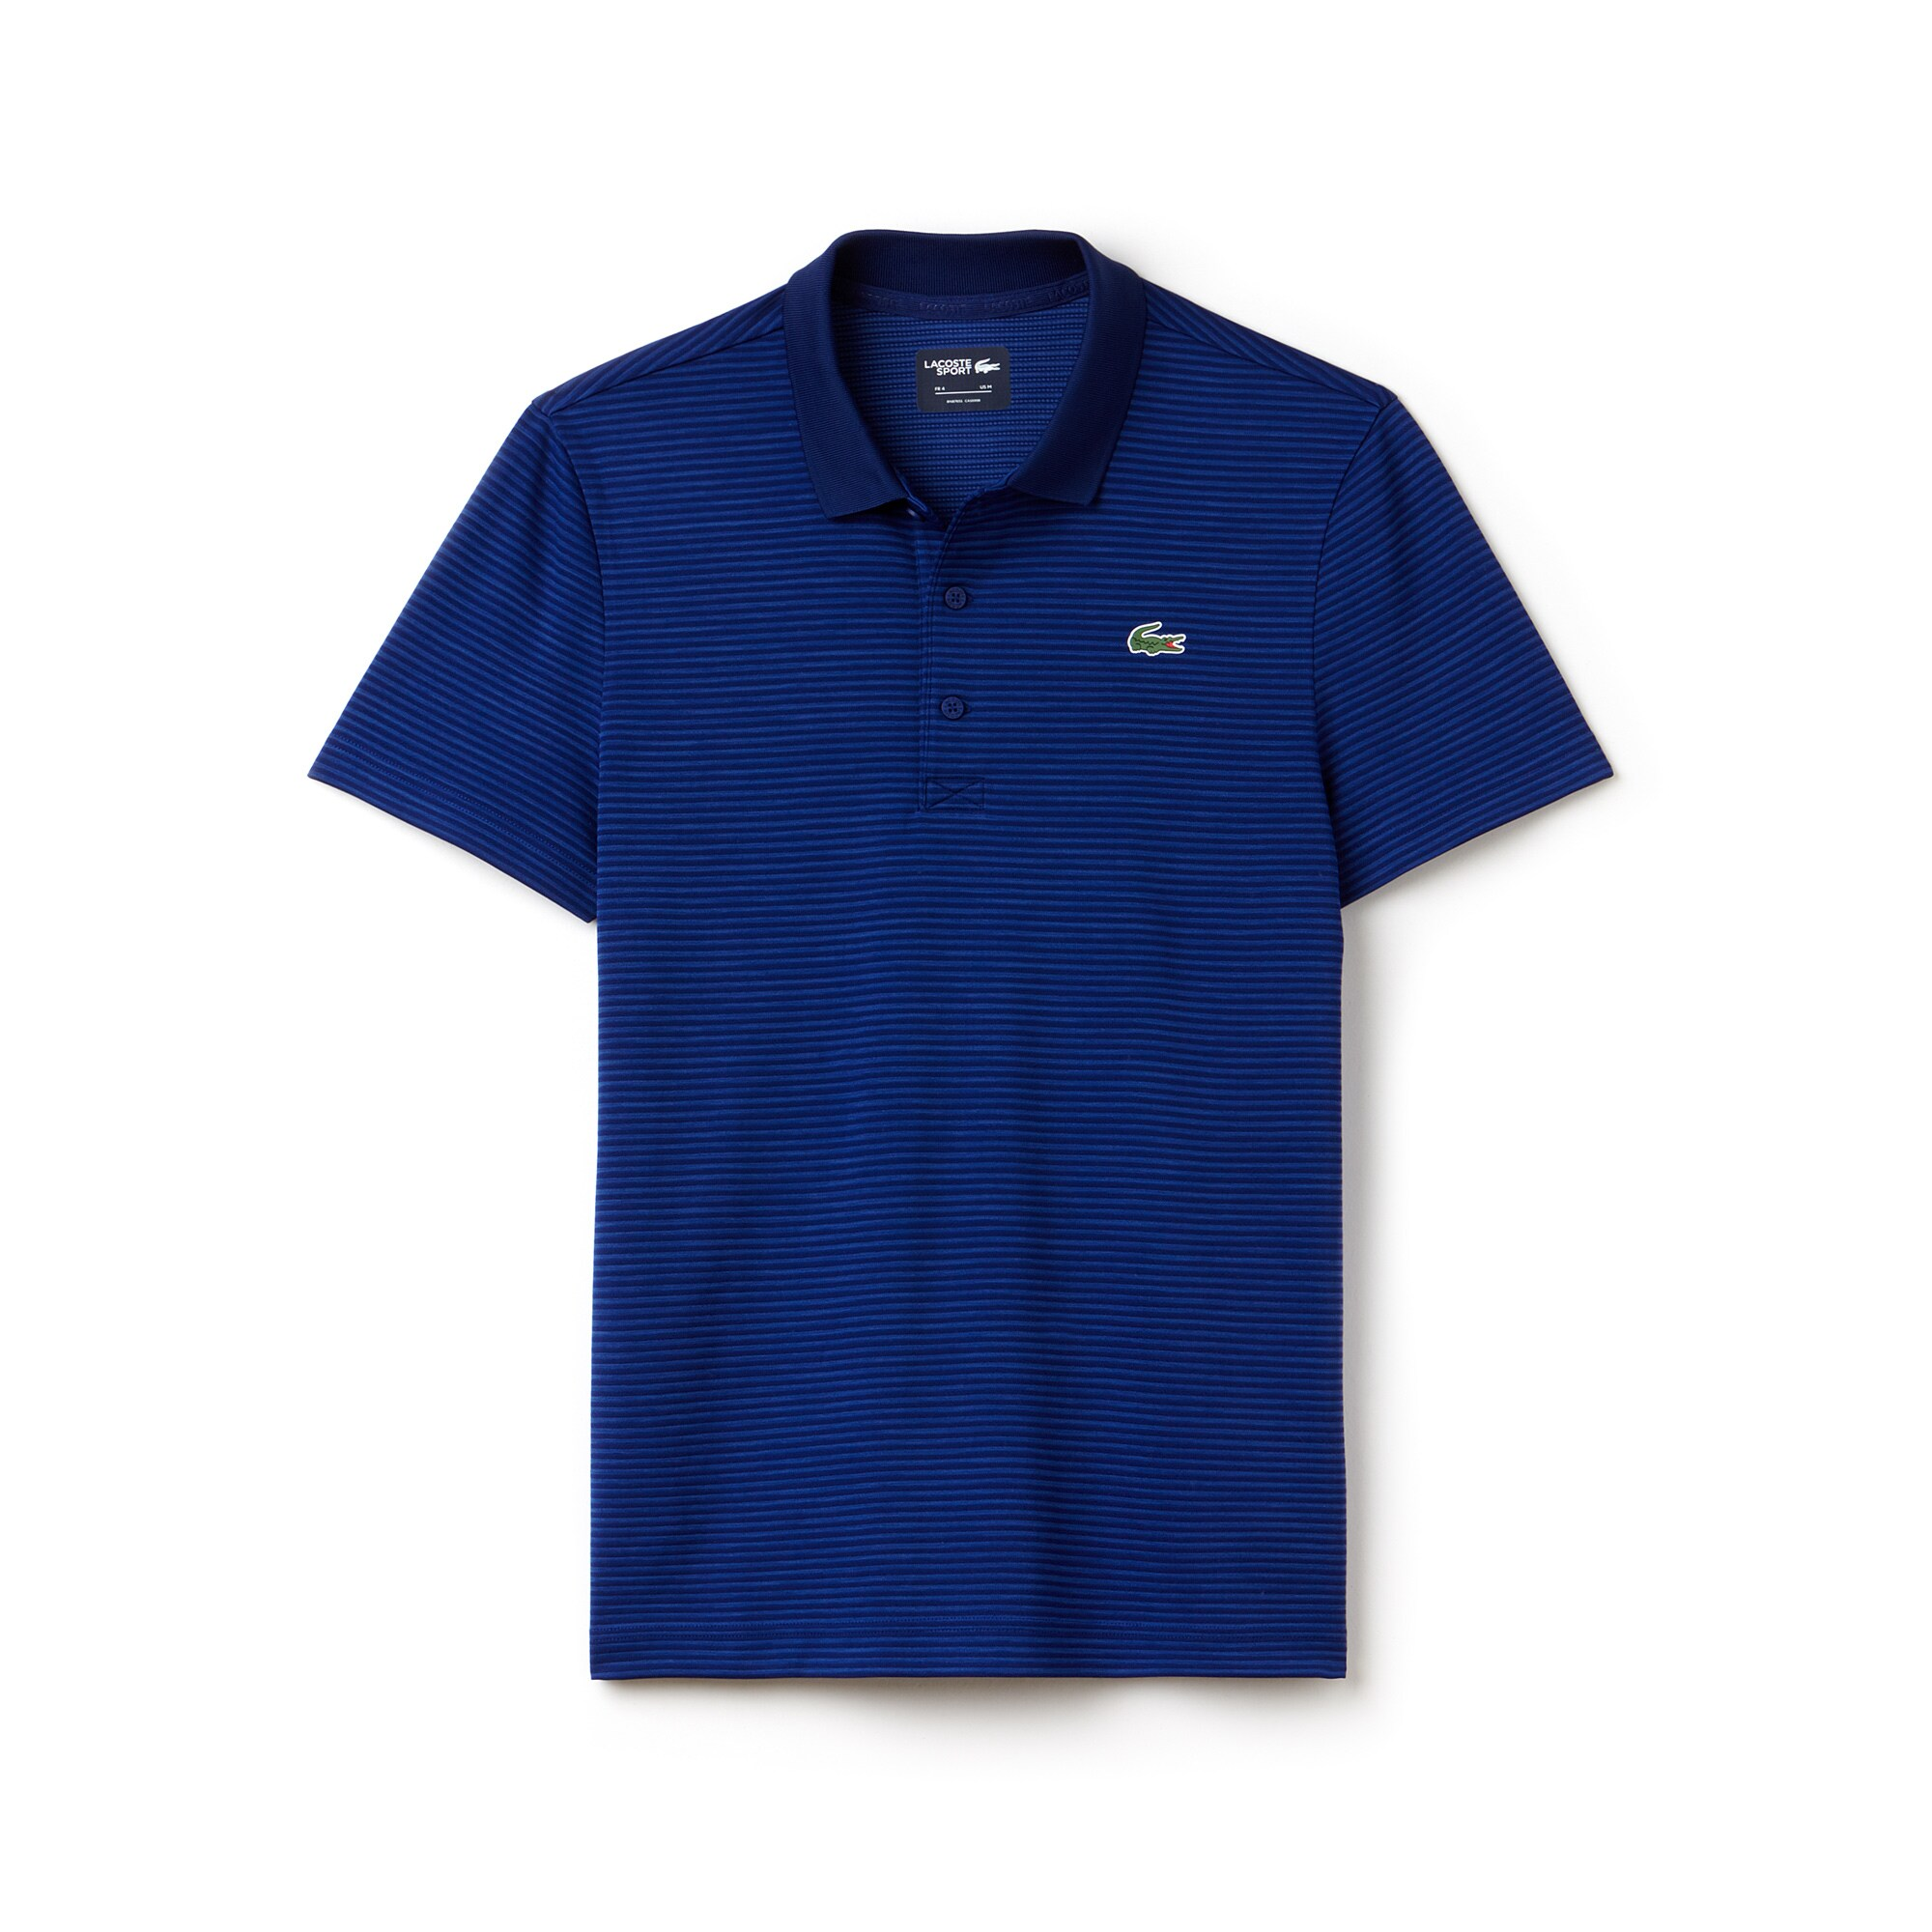 Men's Lacoste SPORT Golf Striped Tech Jersey Polo Shirt